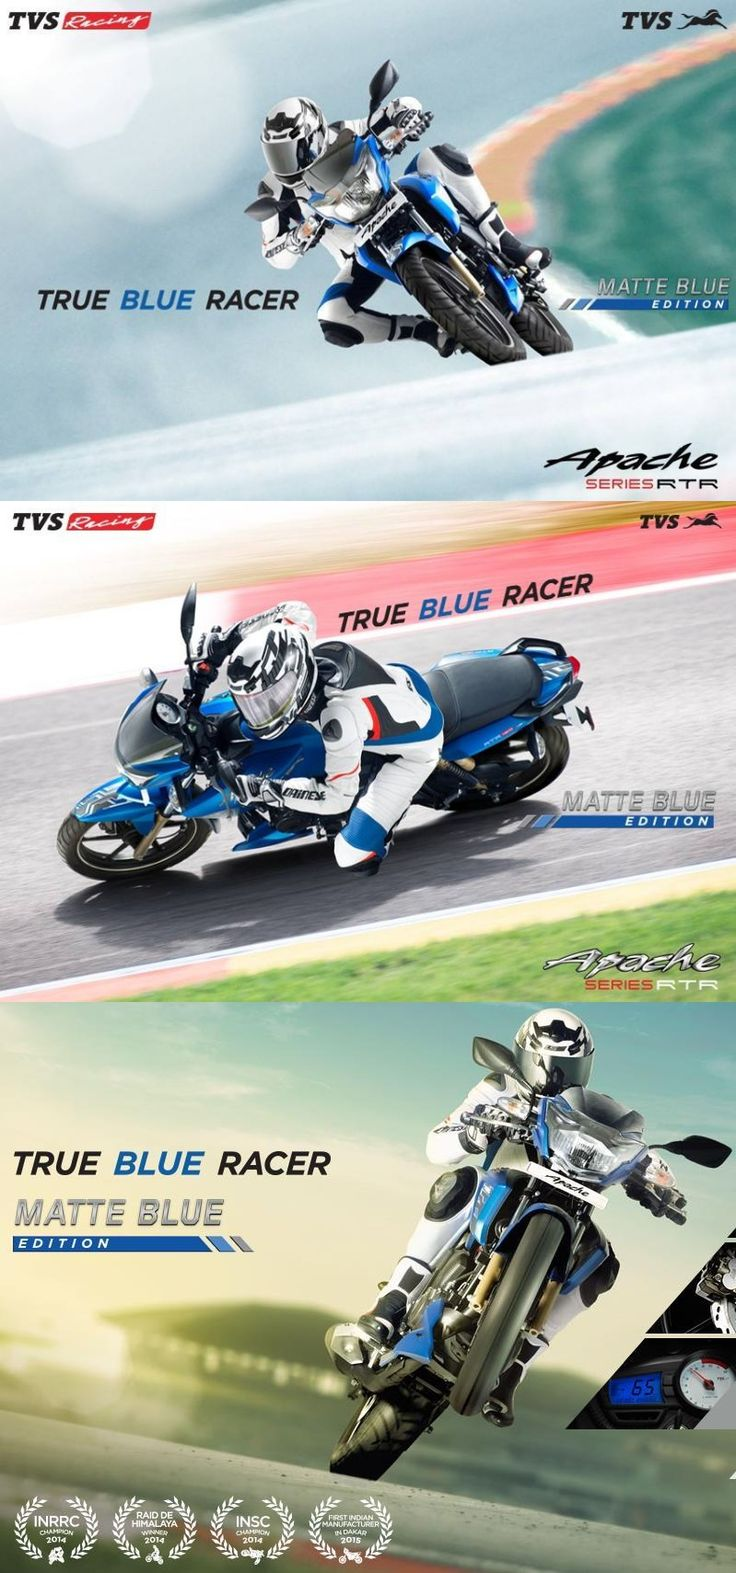 Tvs motor company introduce matte blue edition for tvs apache series